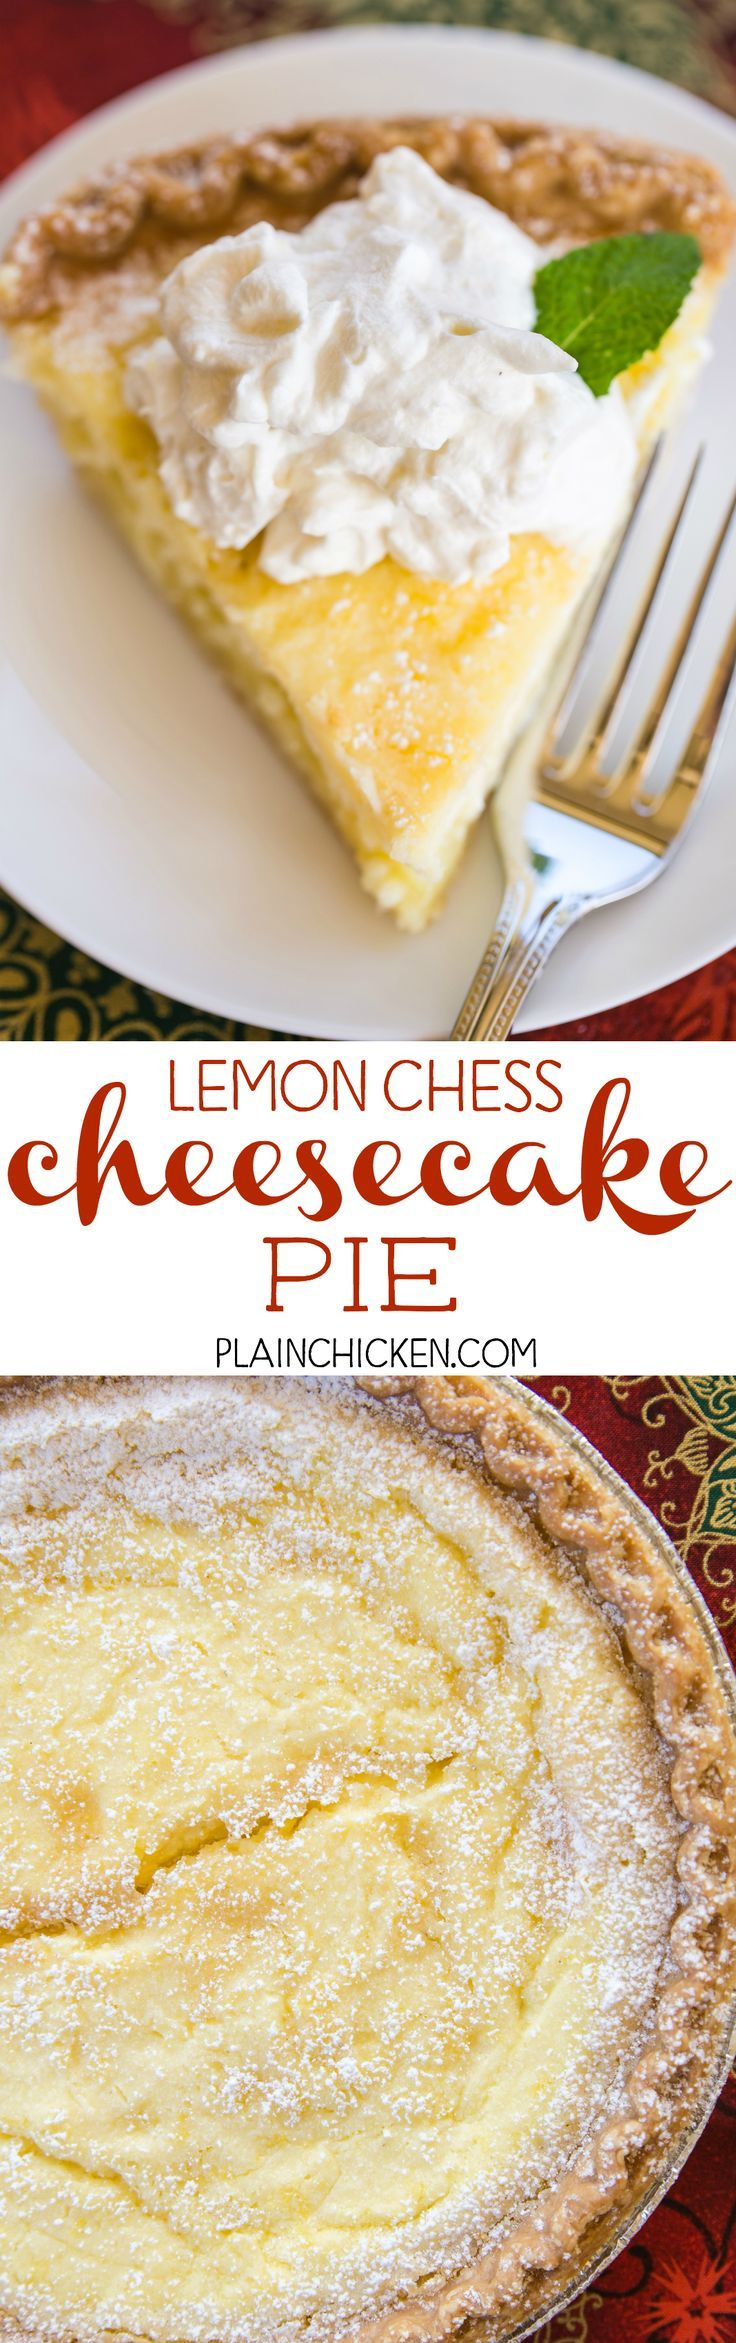 Lemon Chess Cheesecake Pie - two favorites in one dessert! Quick cheesecake layer on the bottom and a delicious homemade lemon chess pie on top! Pie crust, cream cheese, sugar, eggs, butter, milk, lemon juice, lemon rind, flour, cornmeal. Can make ahead o